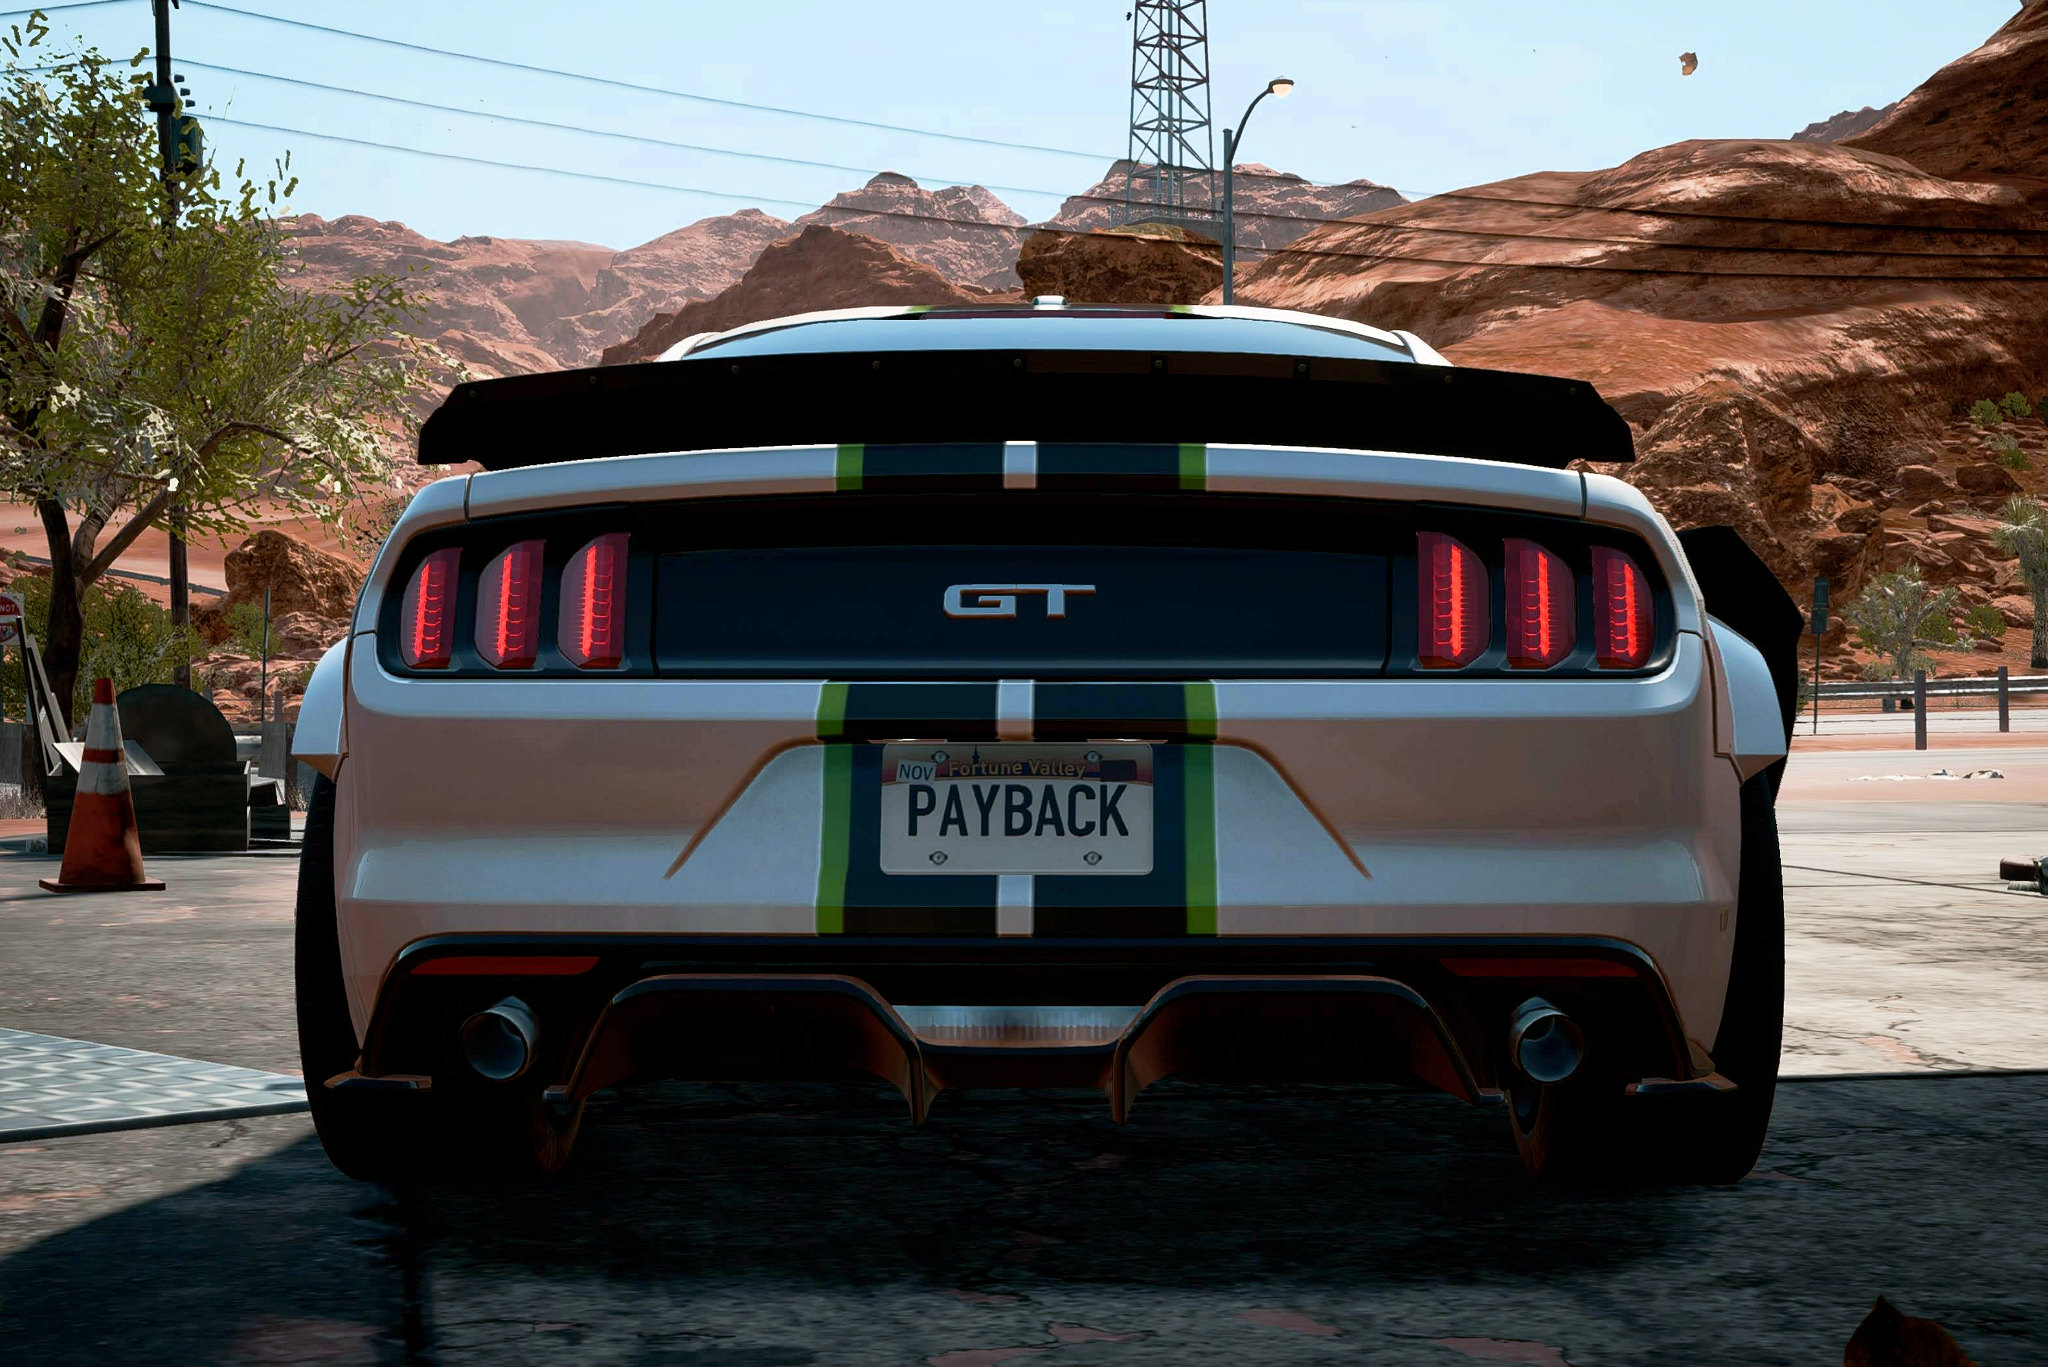 test de need for speed payback sur xbox one x. Black Bedroom Furniture Sets. Home Design Ideas